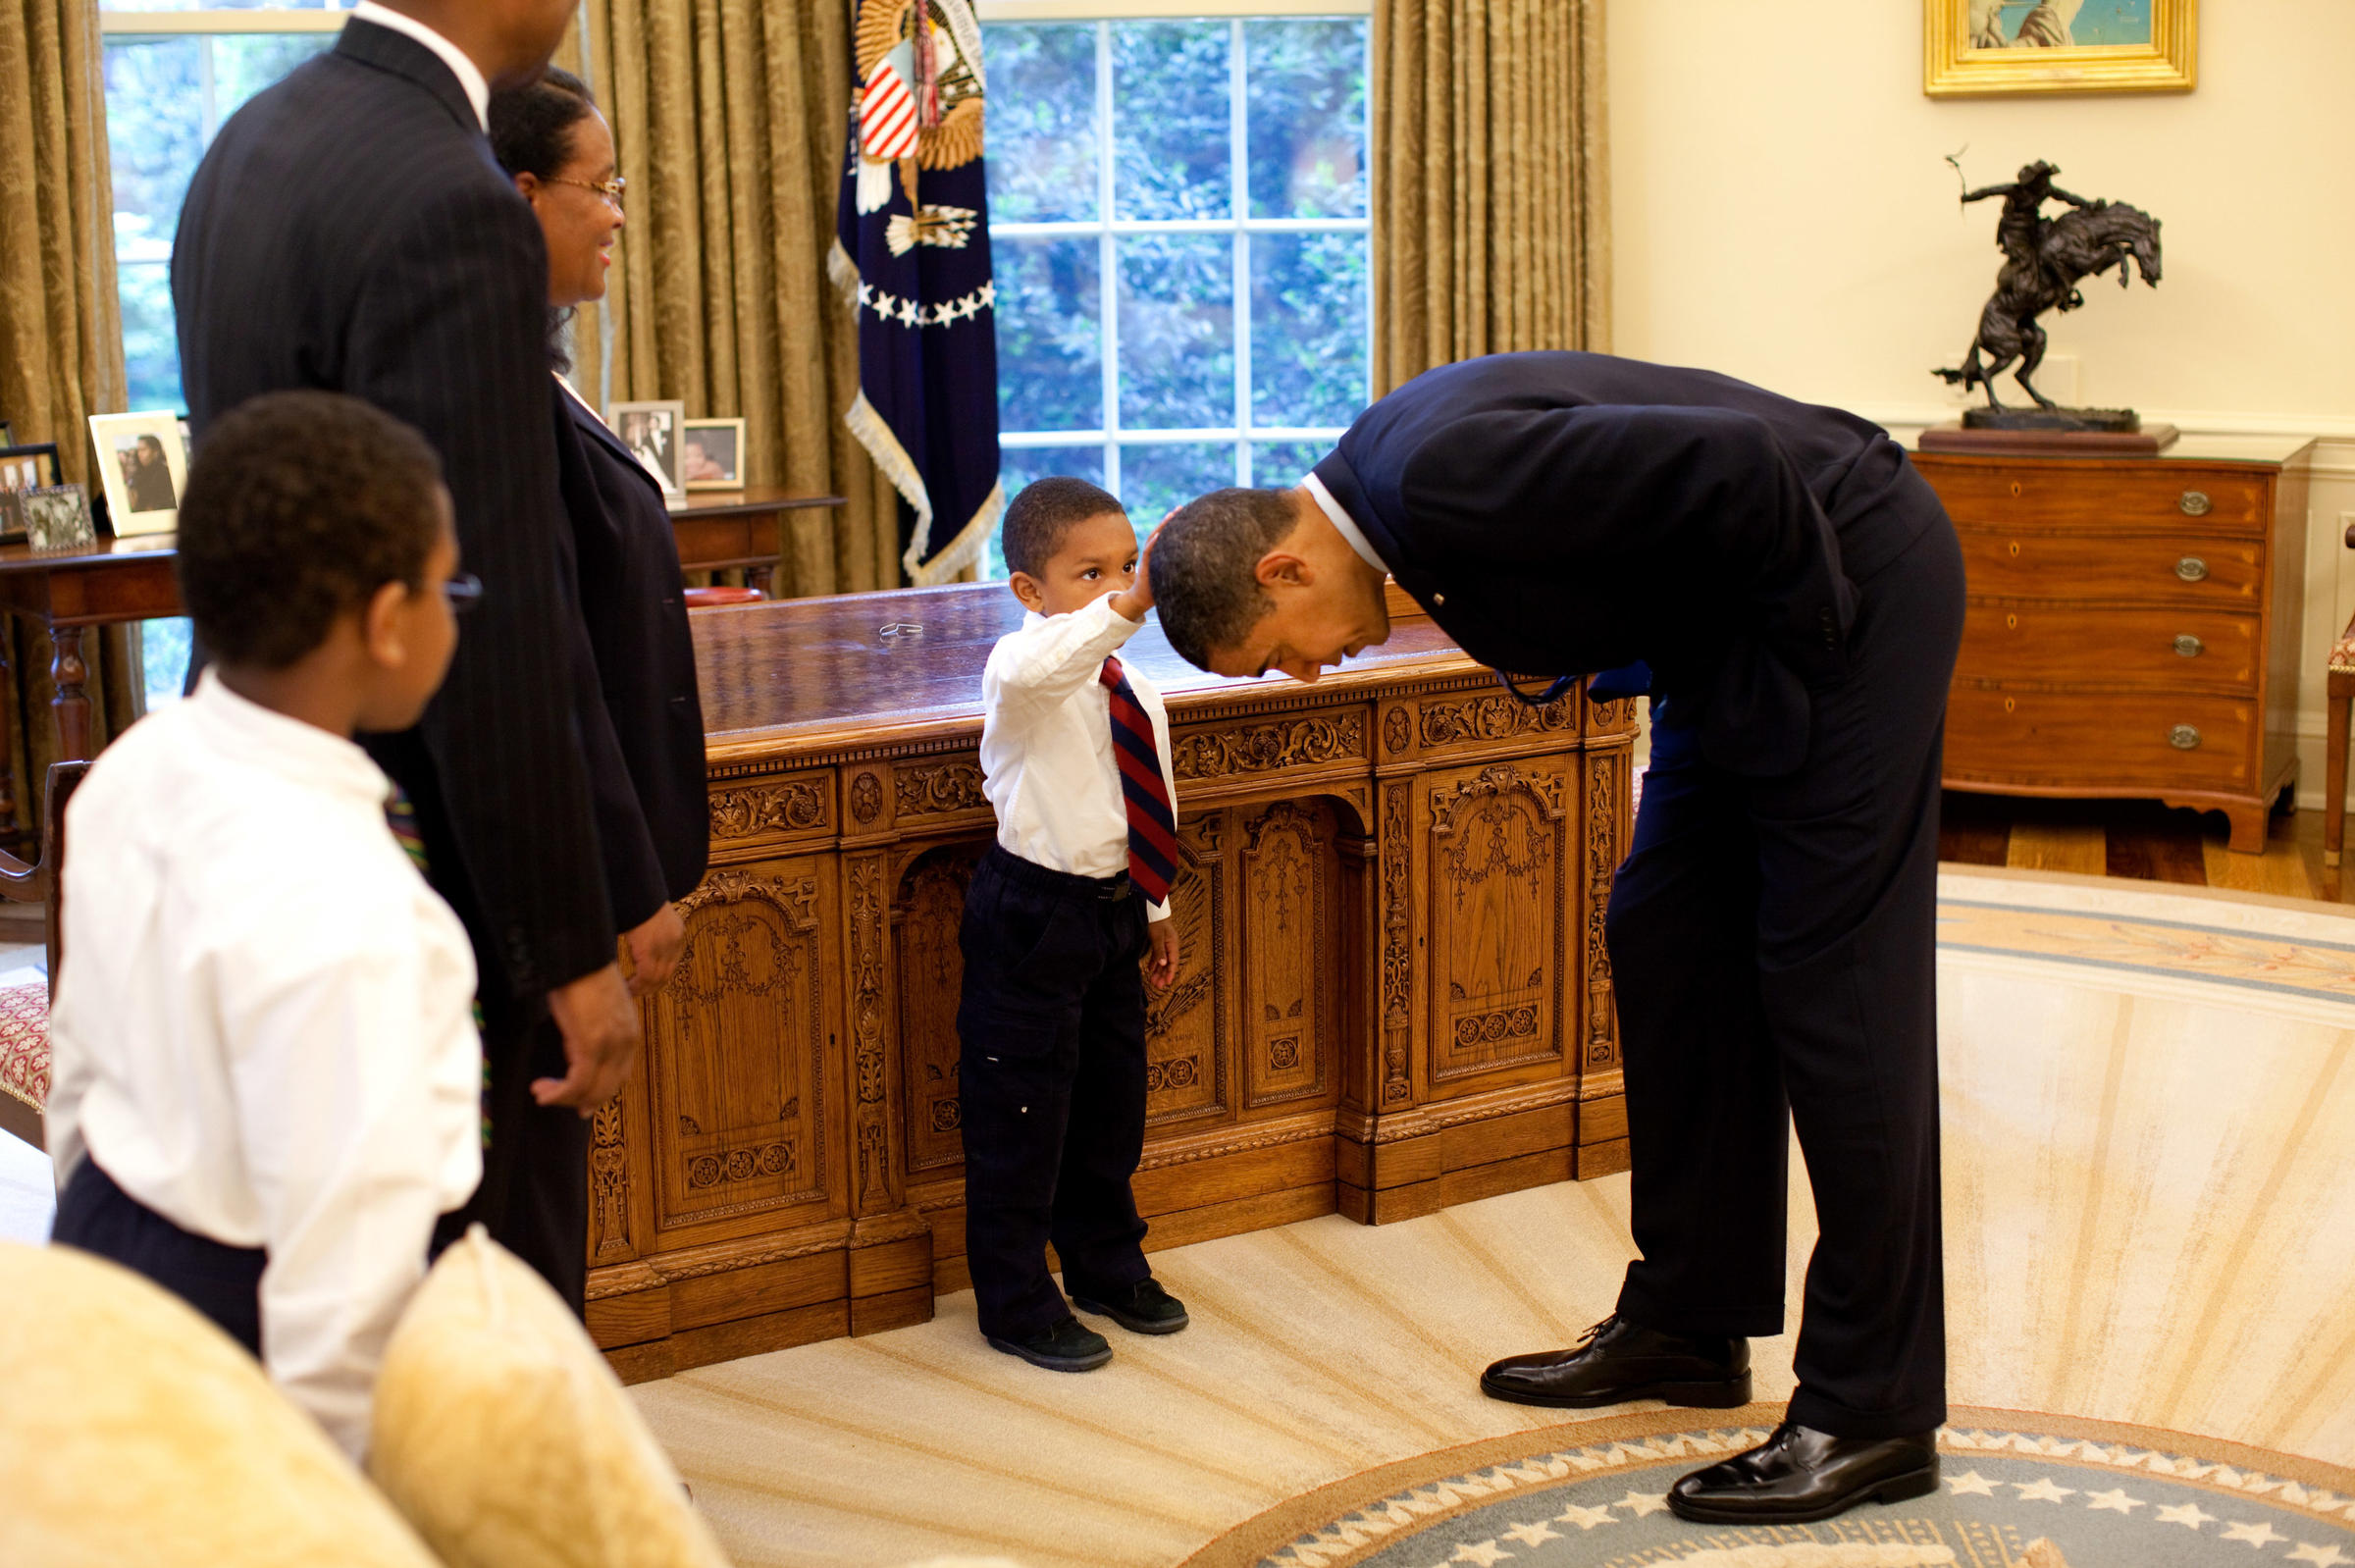 President Barack Bends Over So The Son Of A White House Staff Member Can Pat His Head During Visit To Oval Office On May 8 2009